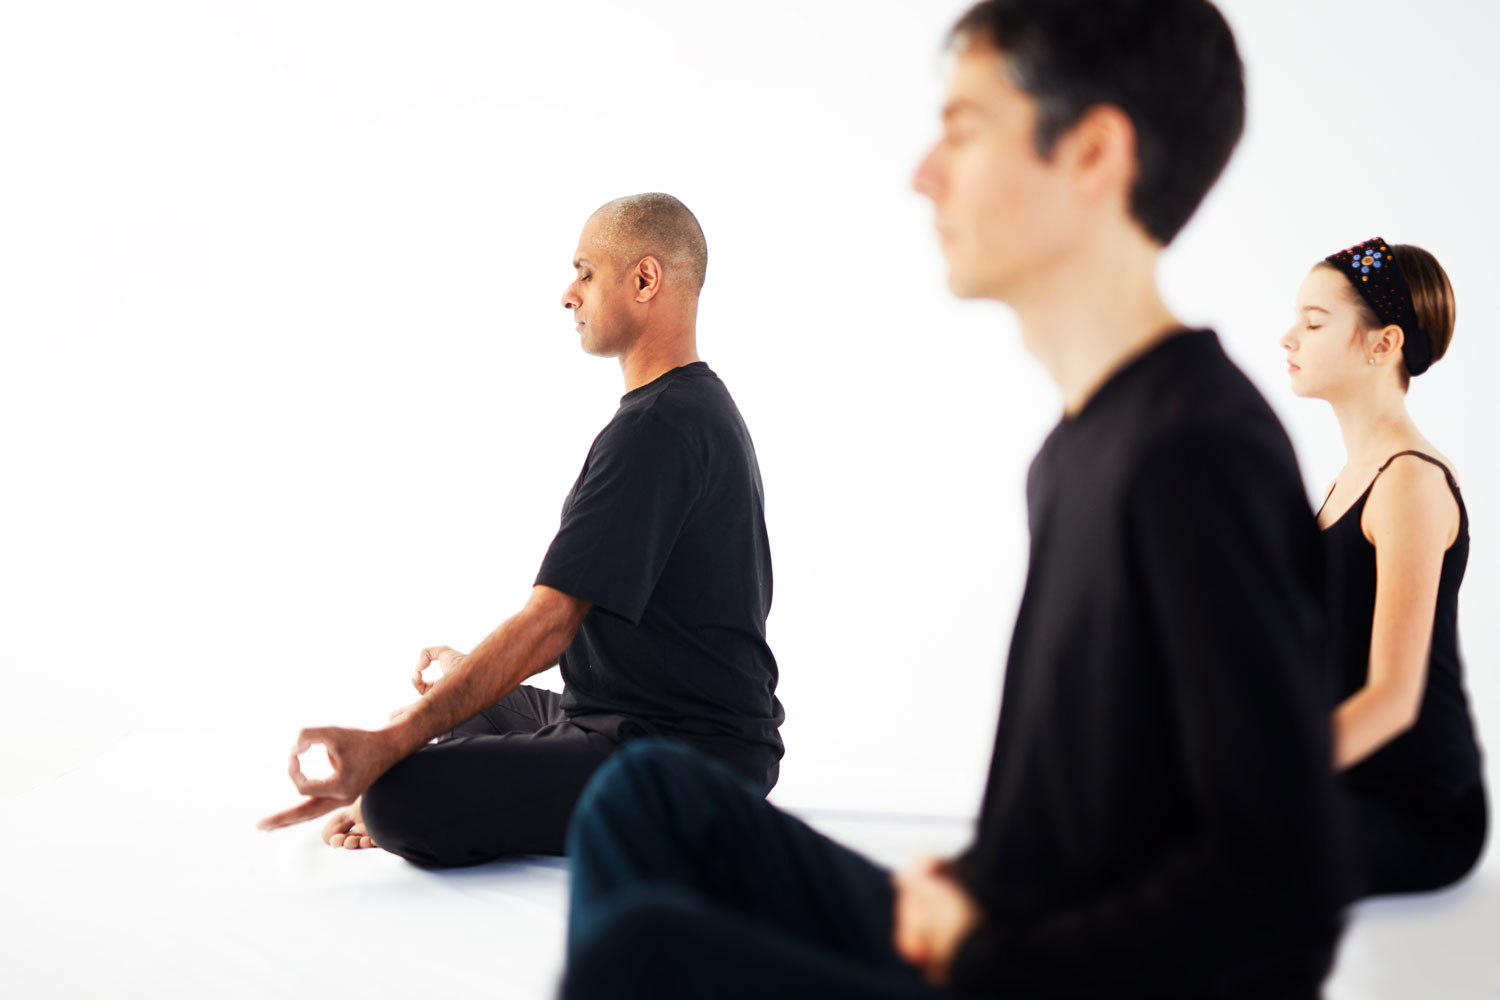 Instructor Ama Mann leads a meditation session